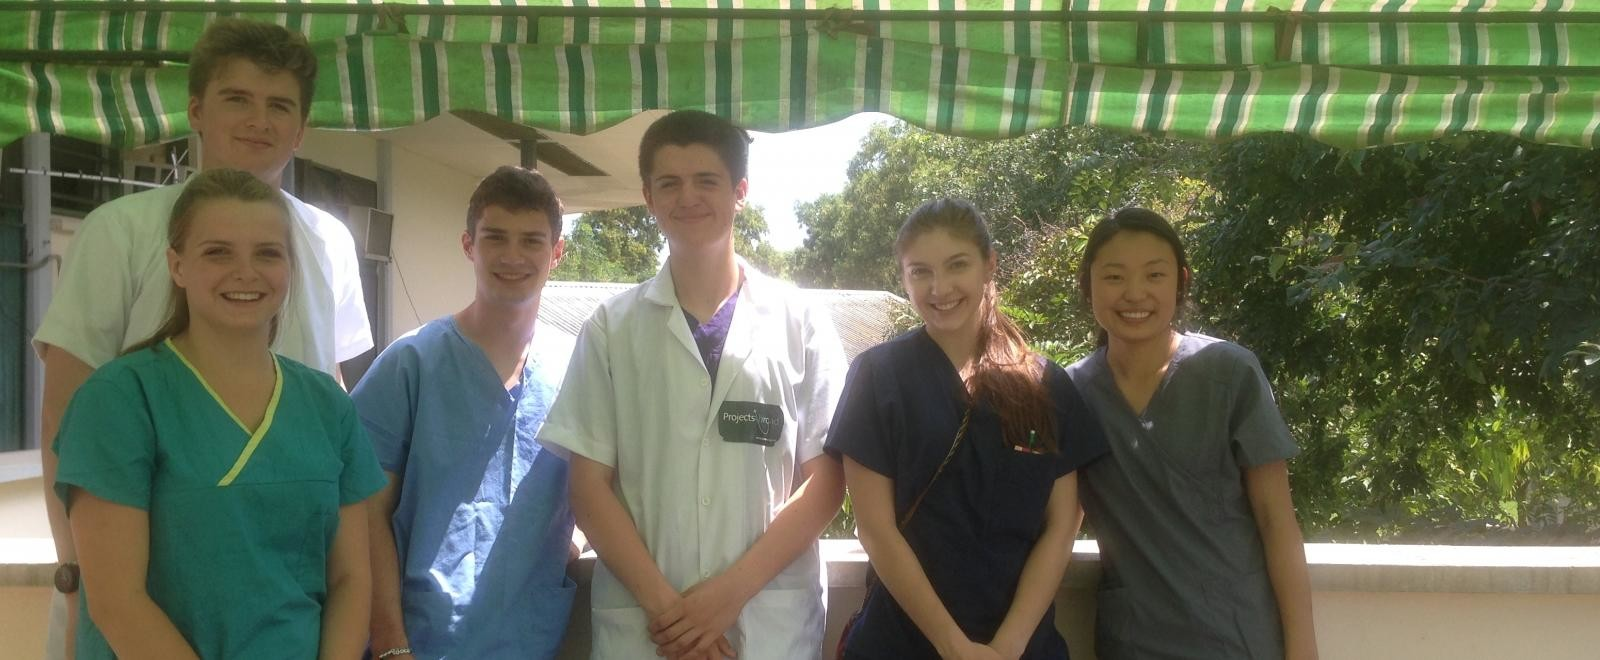 Medicine volunteers at a Teaching Hospital placement